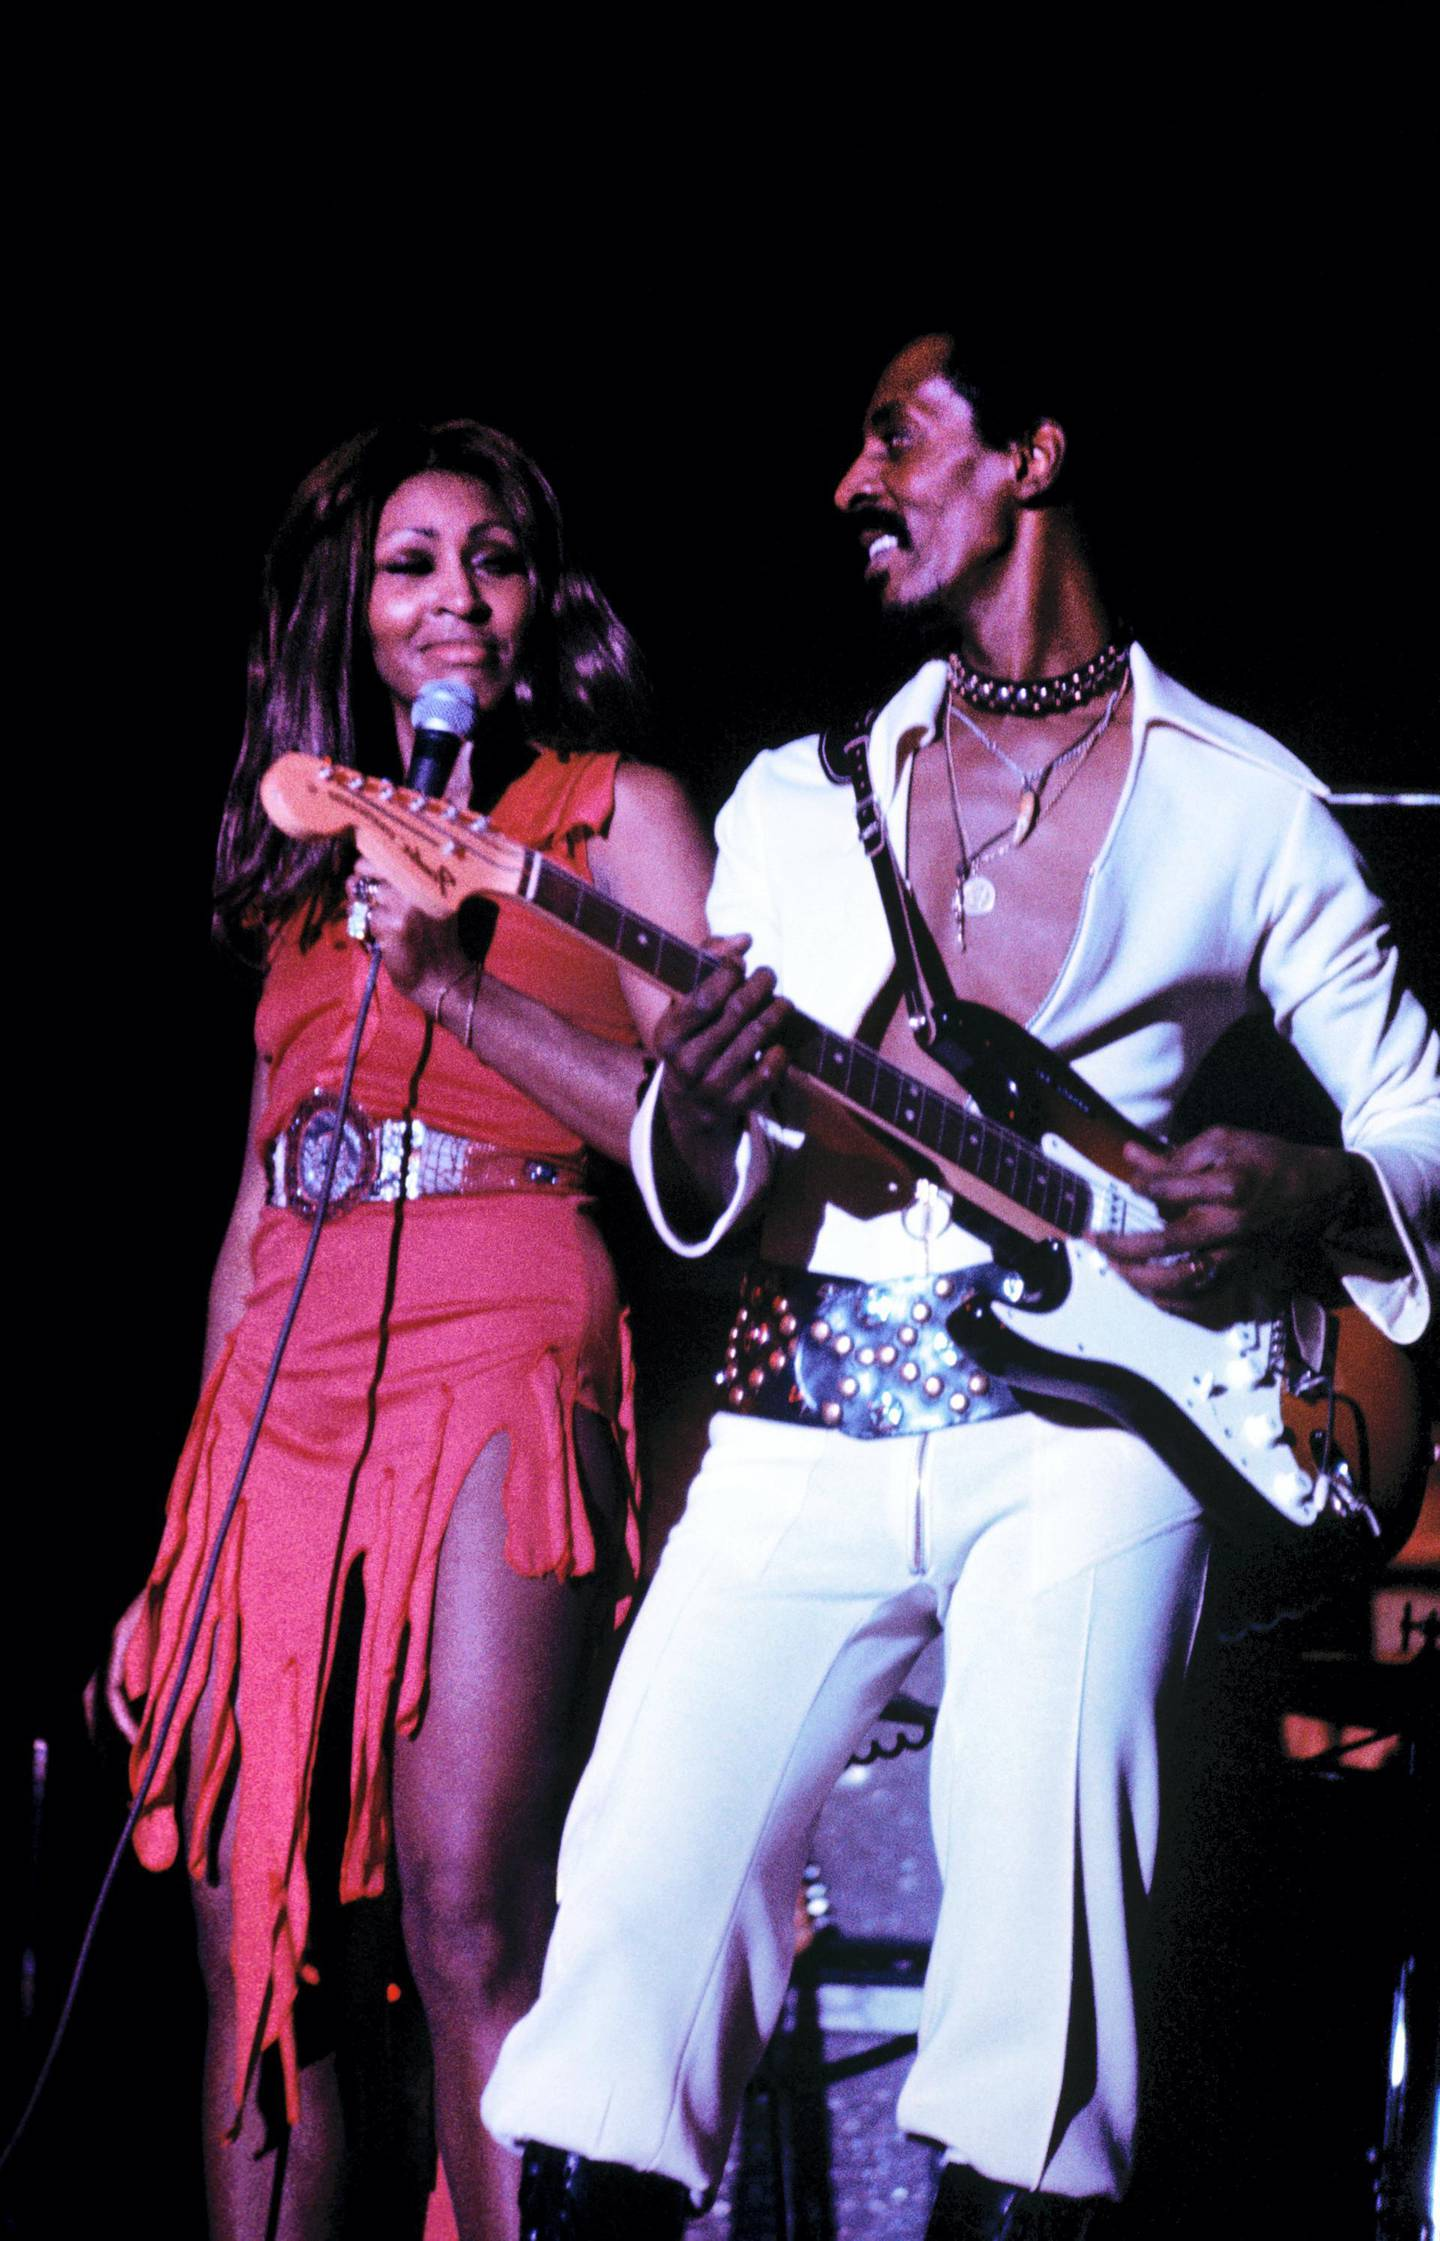 Mandatory Credit: Photo by Kent/Mediapunch/REX/Shutterstock (8551042a) Photograph of Tina and Ike Turner in 1974 Ike Turner-1974